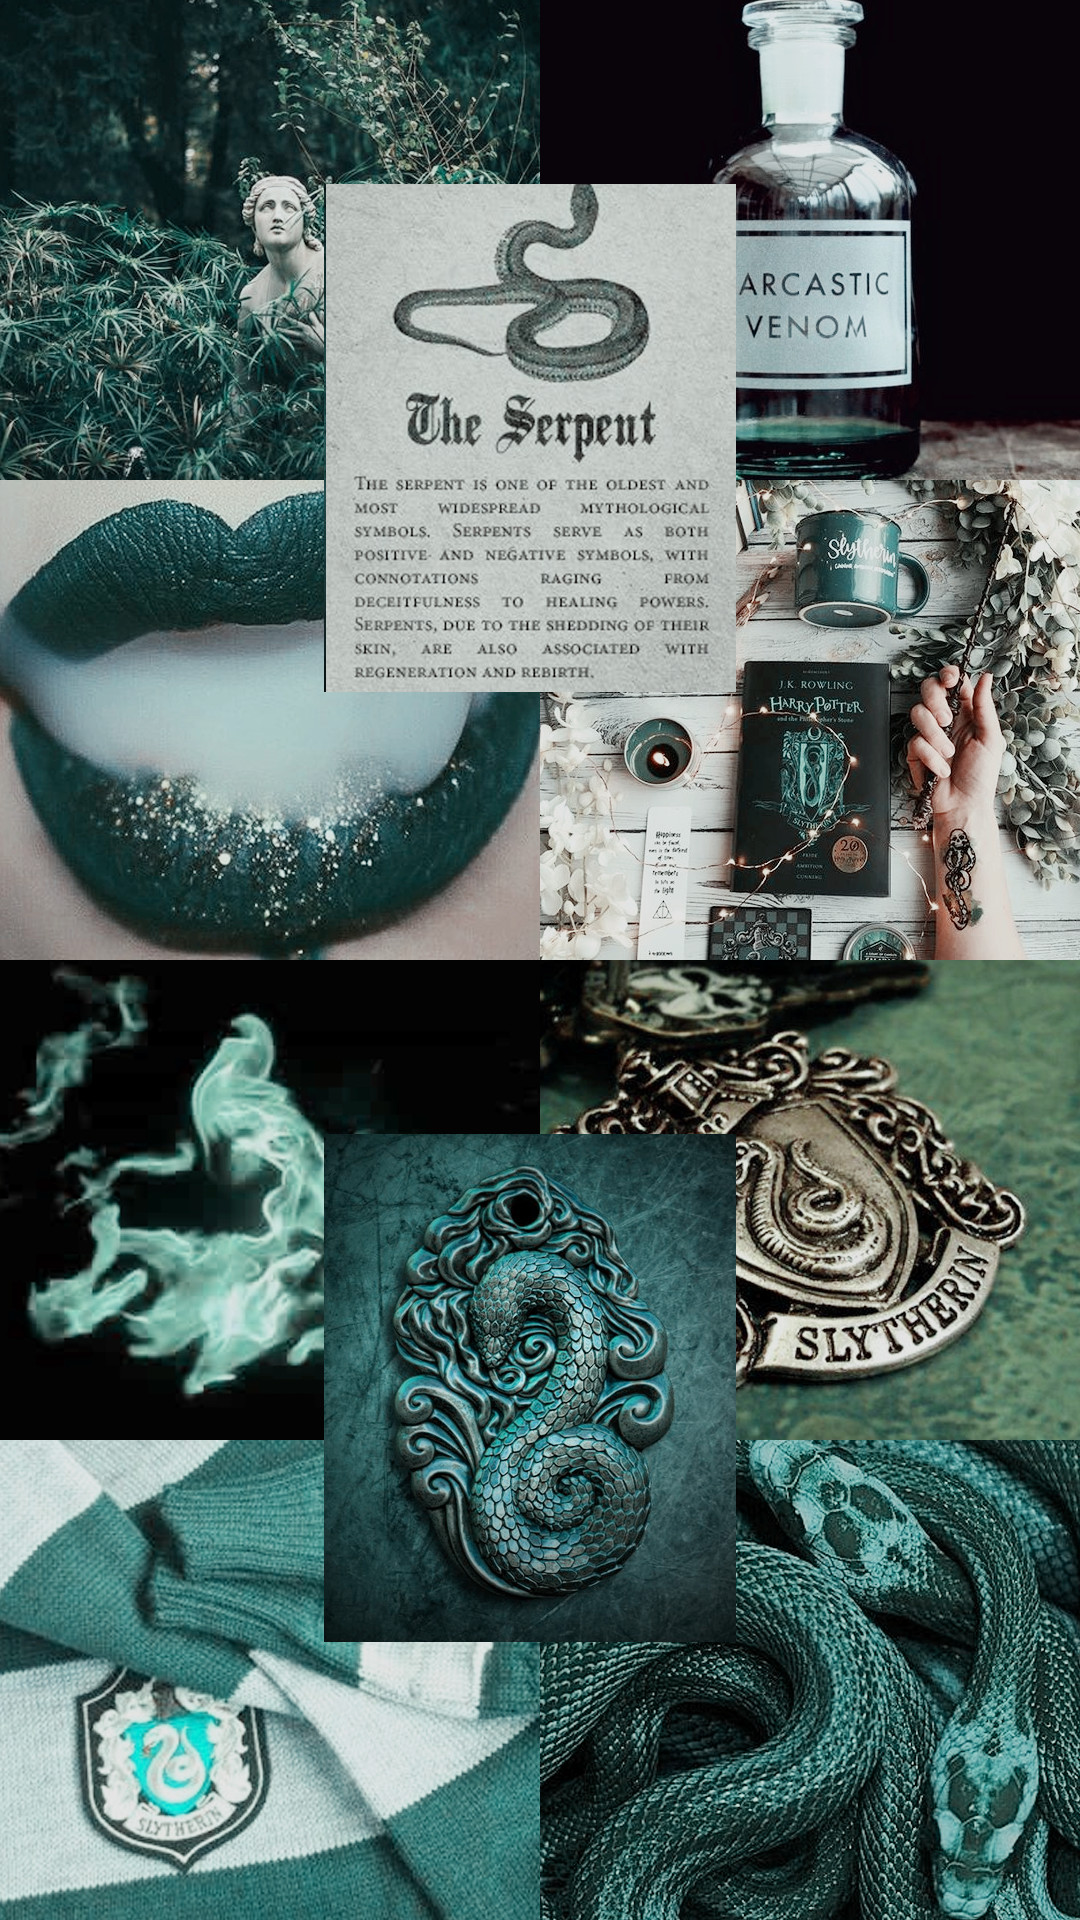 Res: 1080x1920, harry potter locskcreens harry potter lockscreens lockscreens harry potter  gryffindor ravenclaw slytherin gryffindor aesthetic slytherin aesthetic